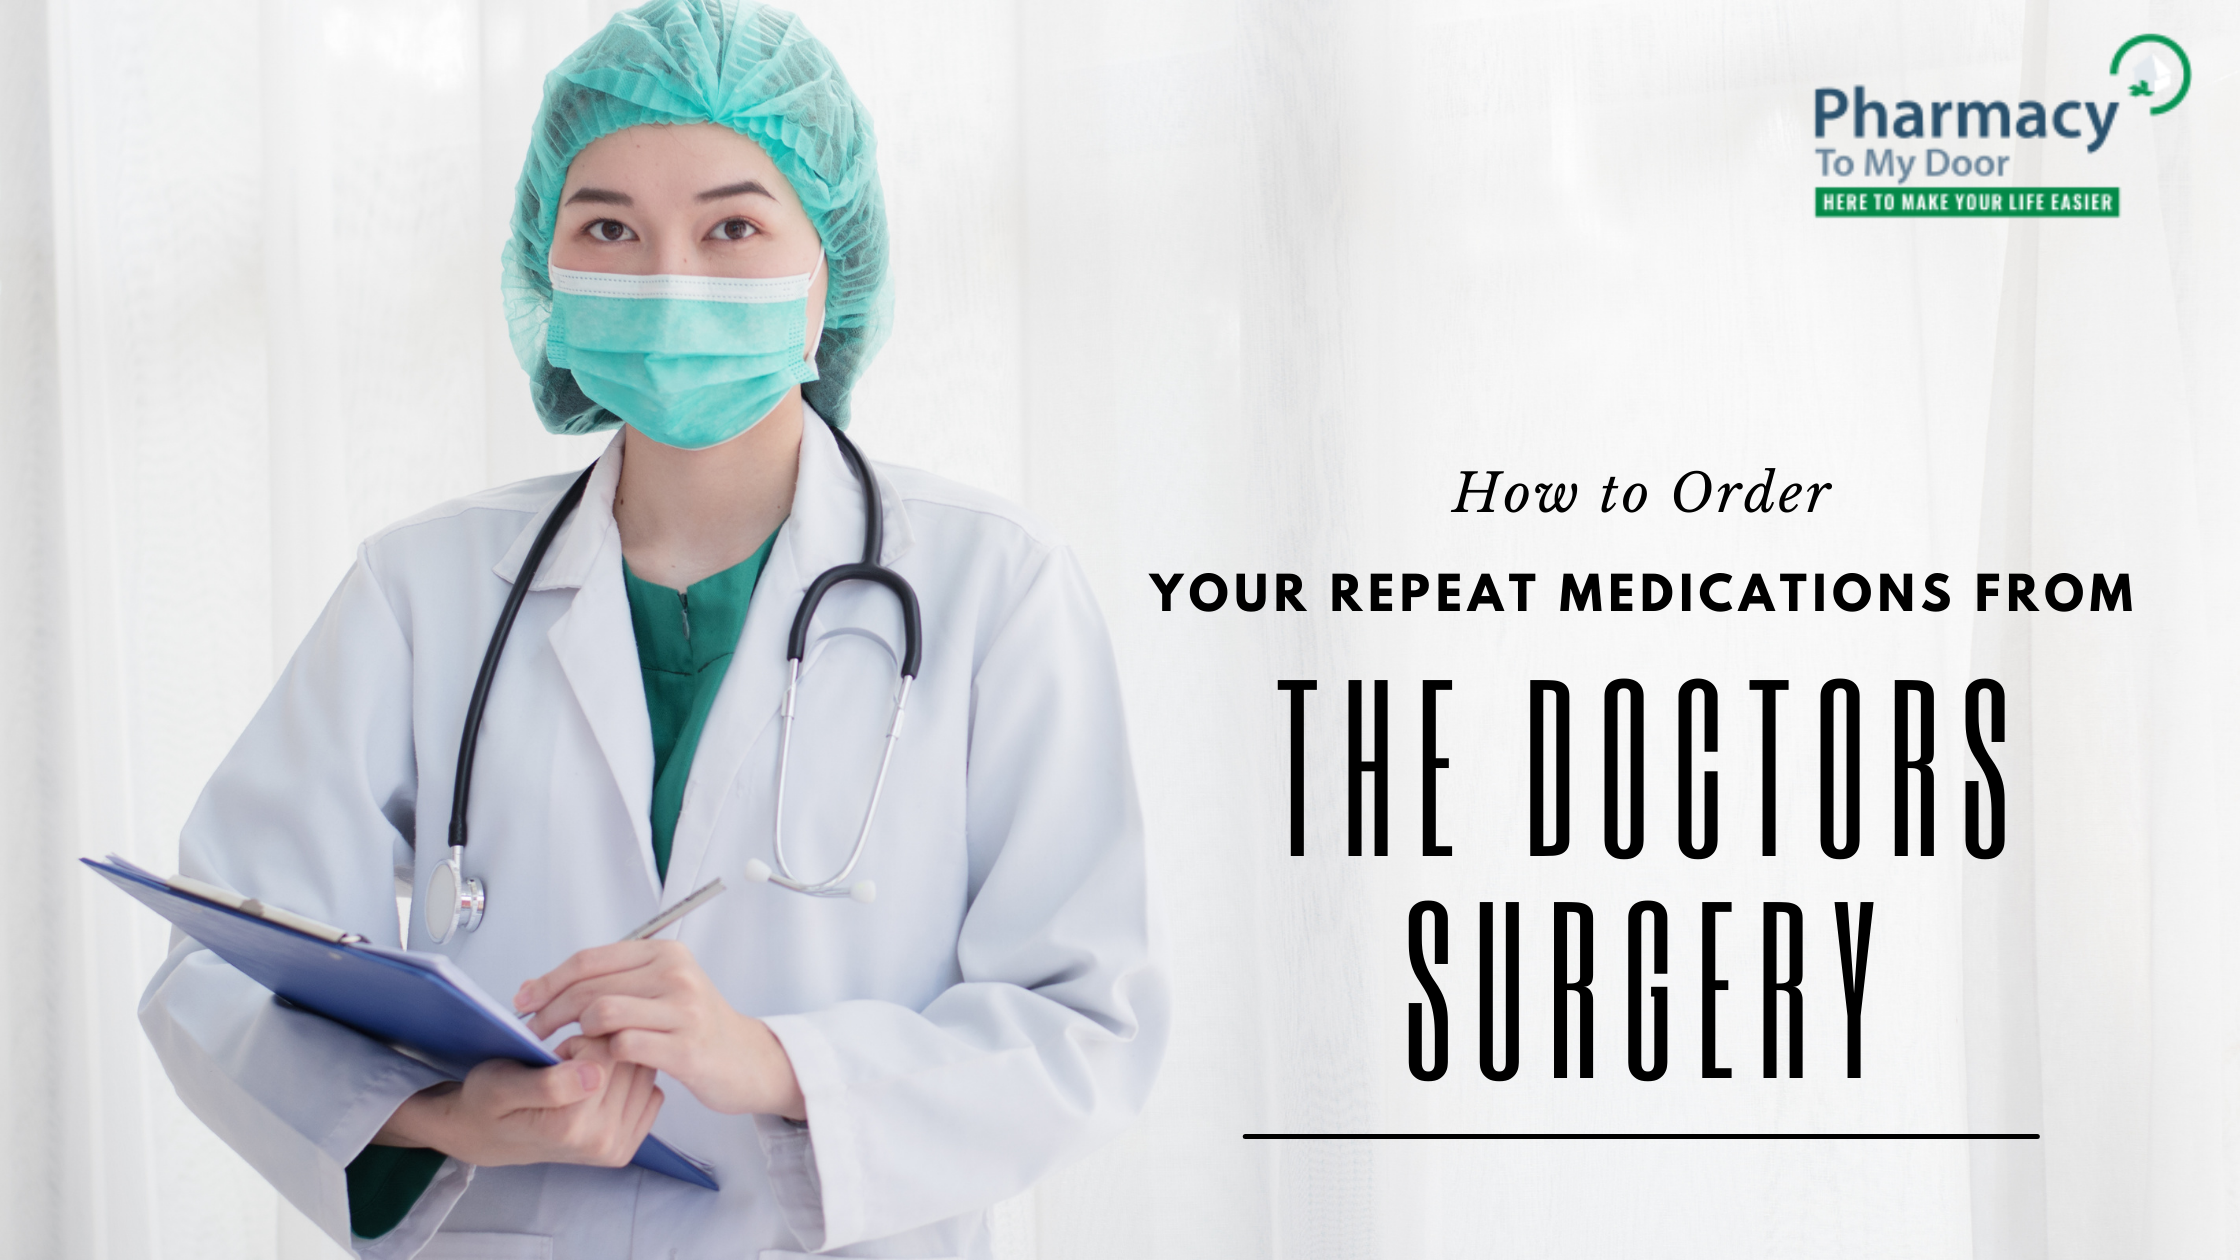 How to Order Your Repeat Medications from the Doctors Surgery